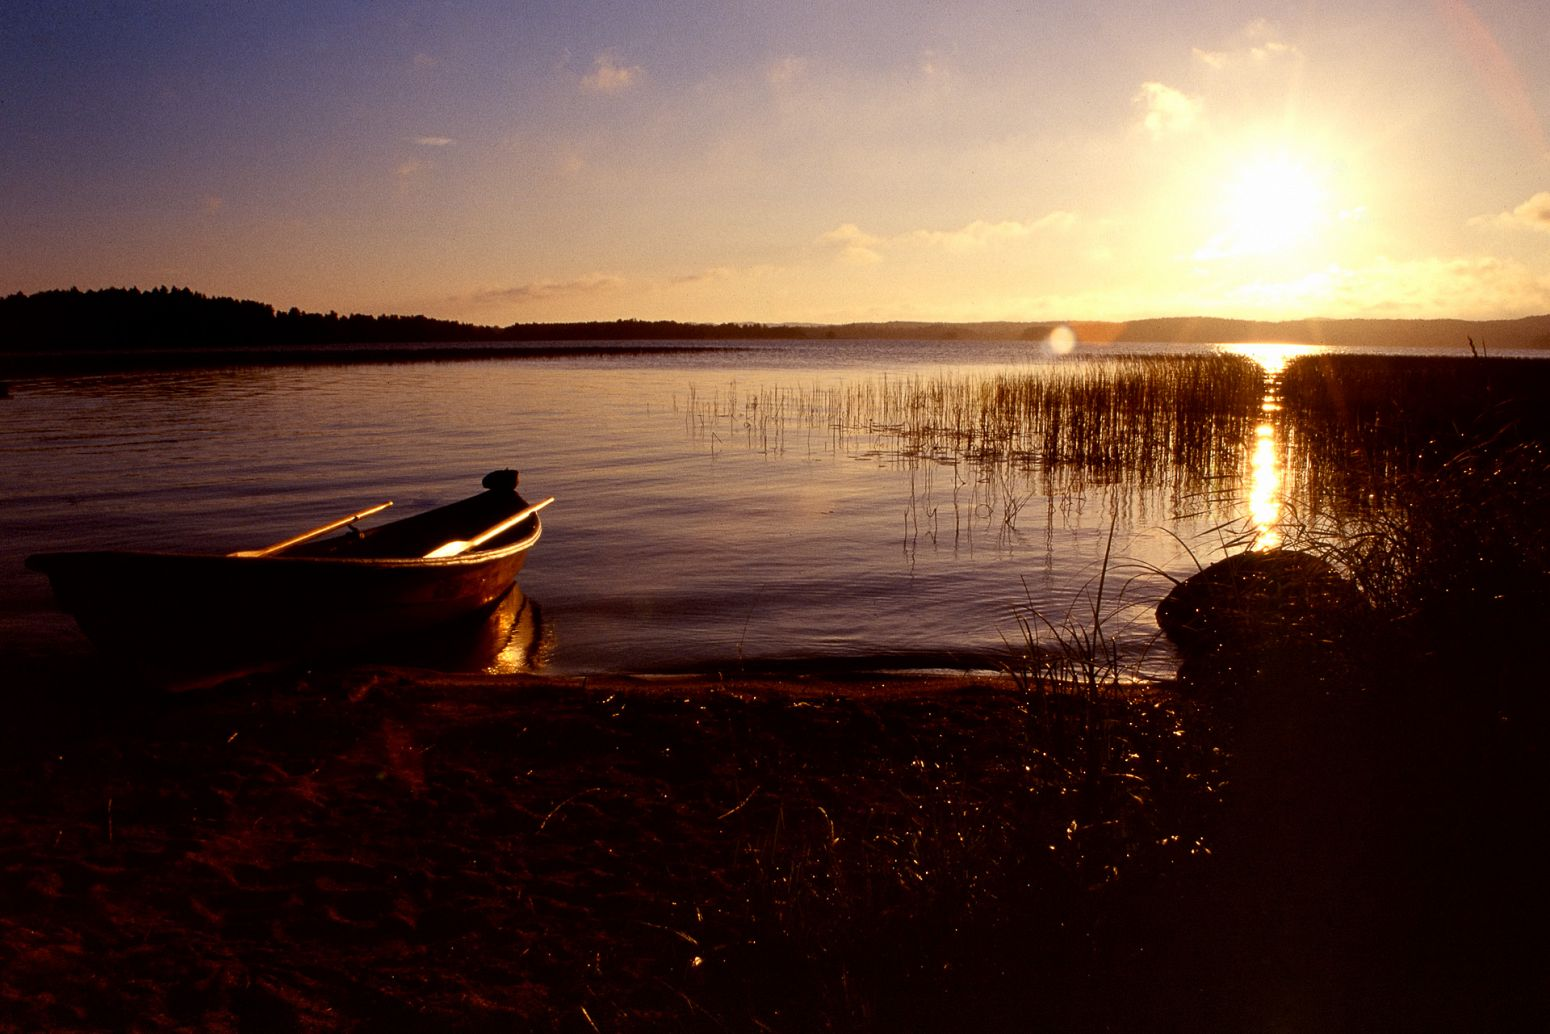 Sunrise by the lake, Orivesi, Finland